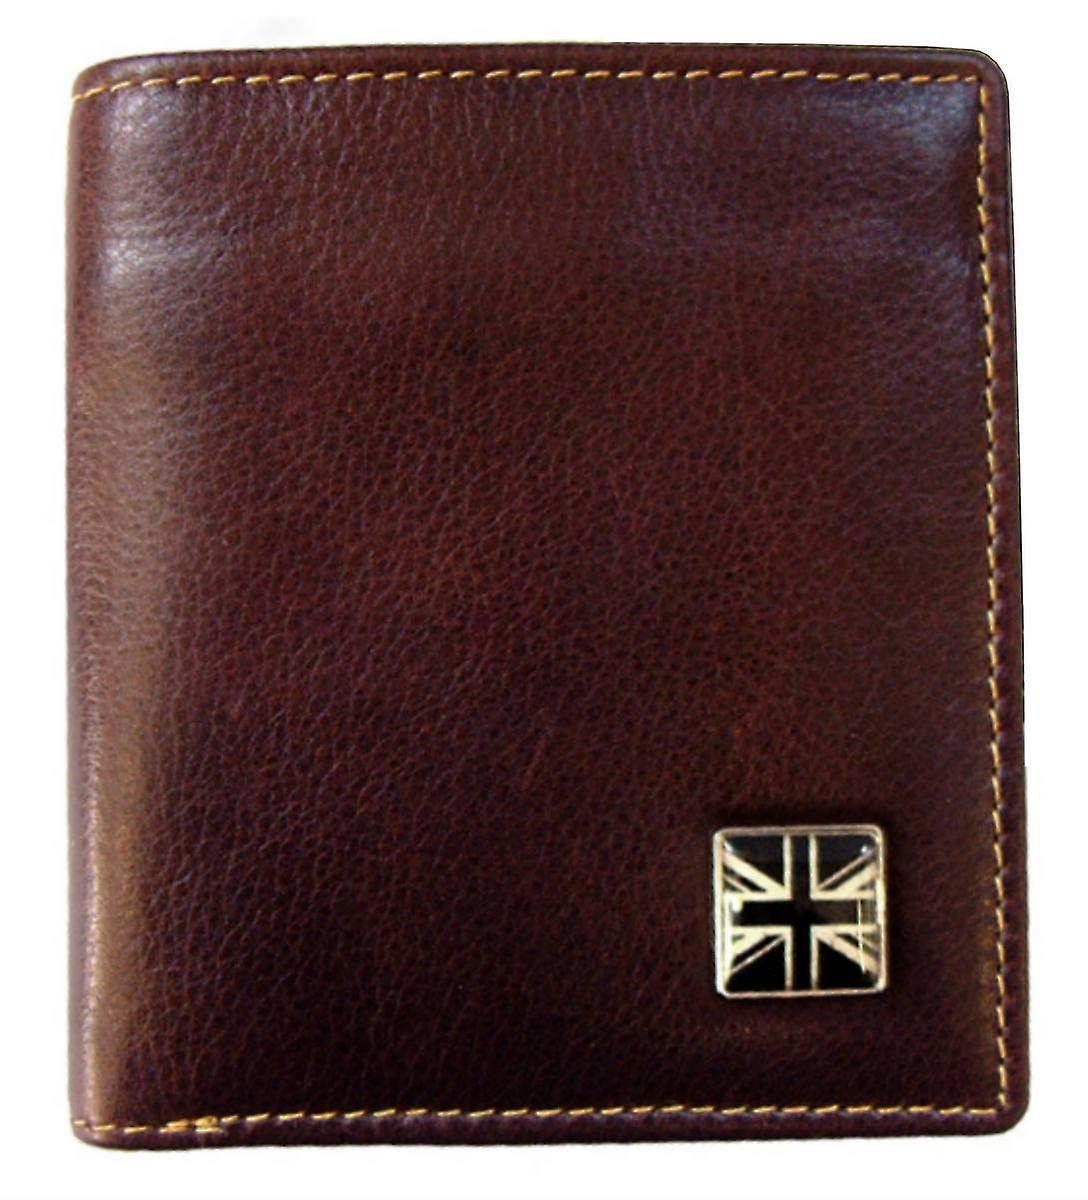 Tyler and Tyler Leather Union Jack Jeans Wallet  - Brown